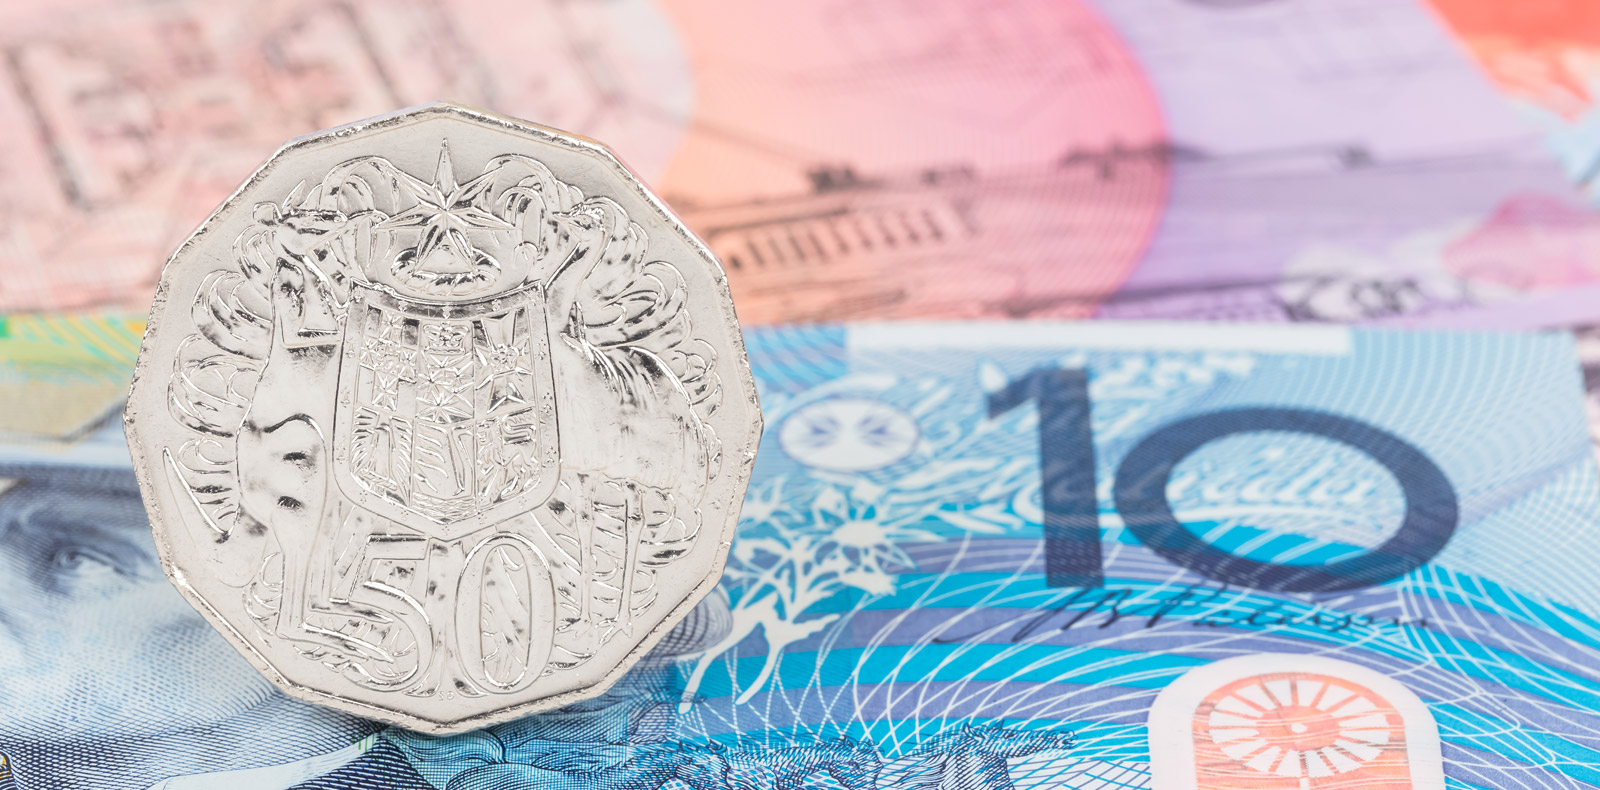 Pound to Australian Dollar remains volatile, as Australian inflation increases.